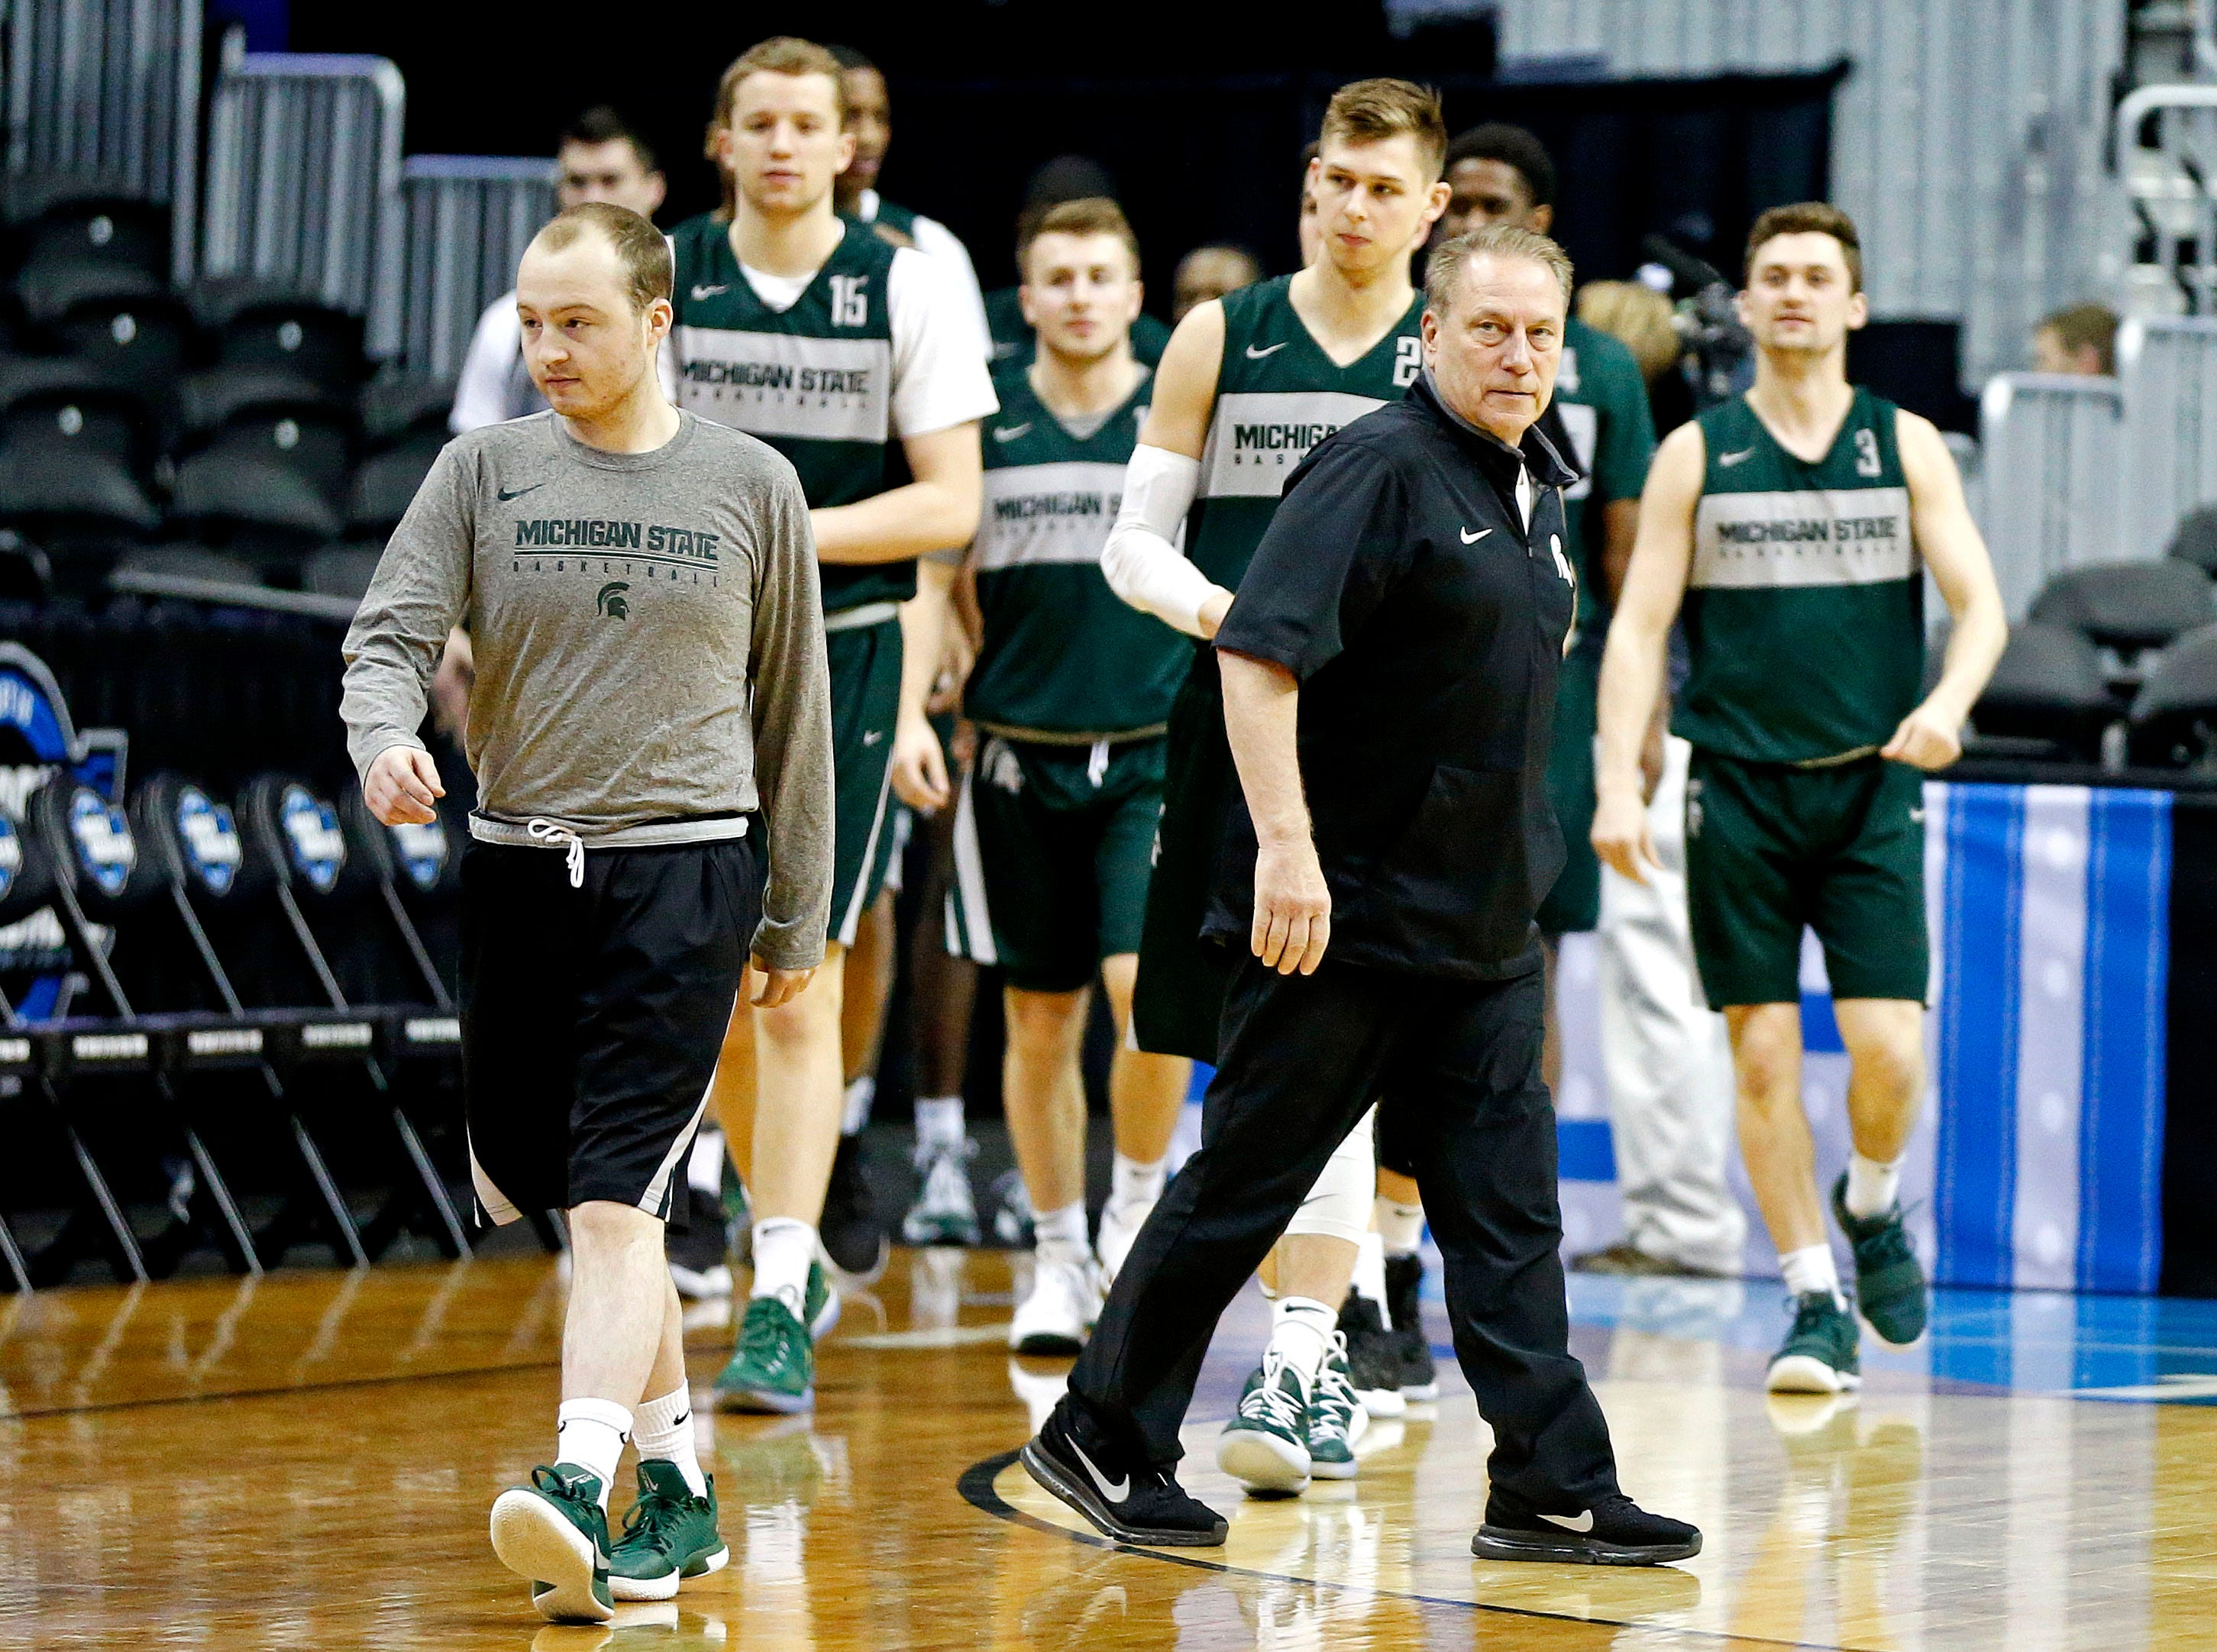 Mar 28, 2019; Washington, DC, USA; Michigan State Spartans head coach Tom Izzo leads his team onto the court during practice for the east regional of the 2019 NCAA Tournament at Capital One Arena. Mandatory Credit: Amber Searls-USA TODAY Sports